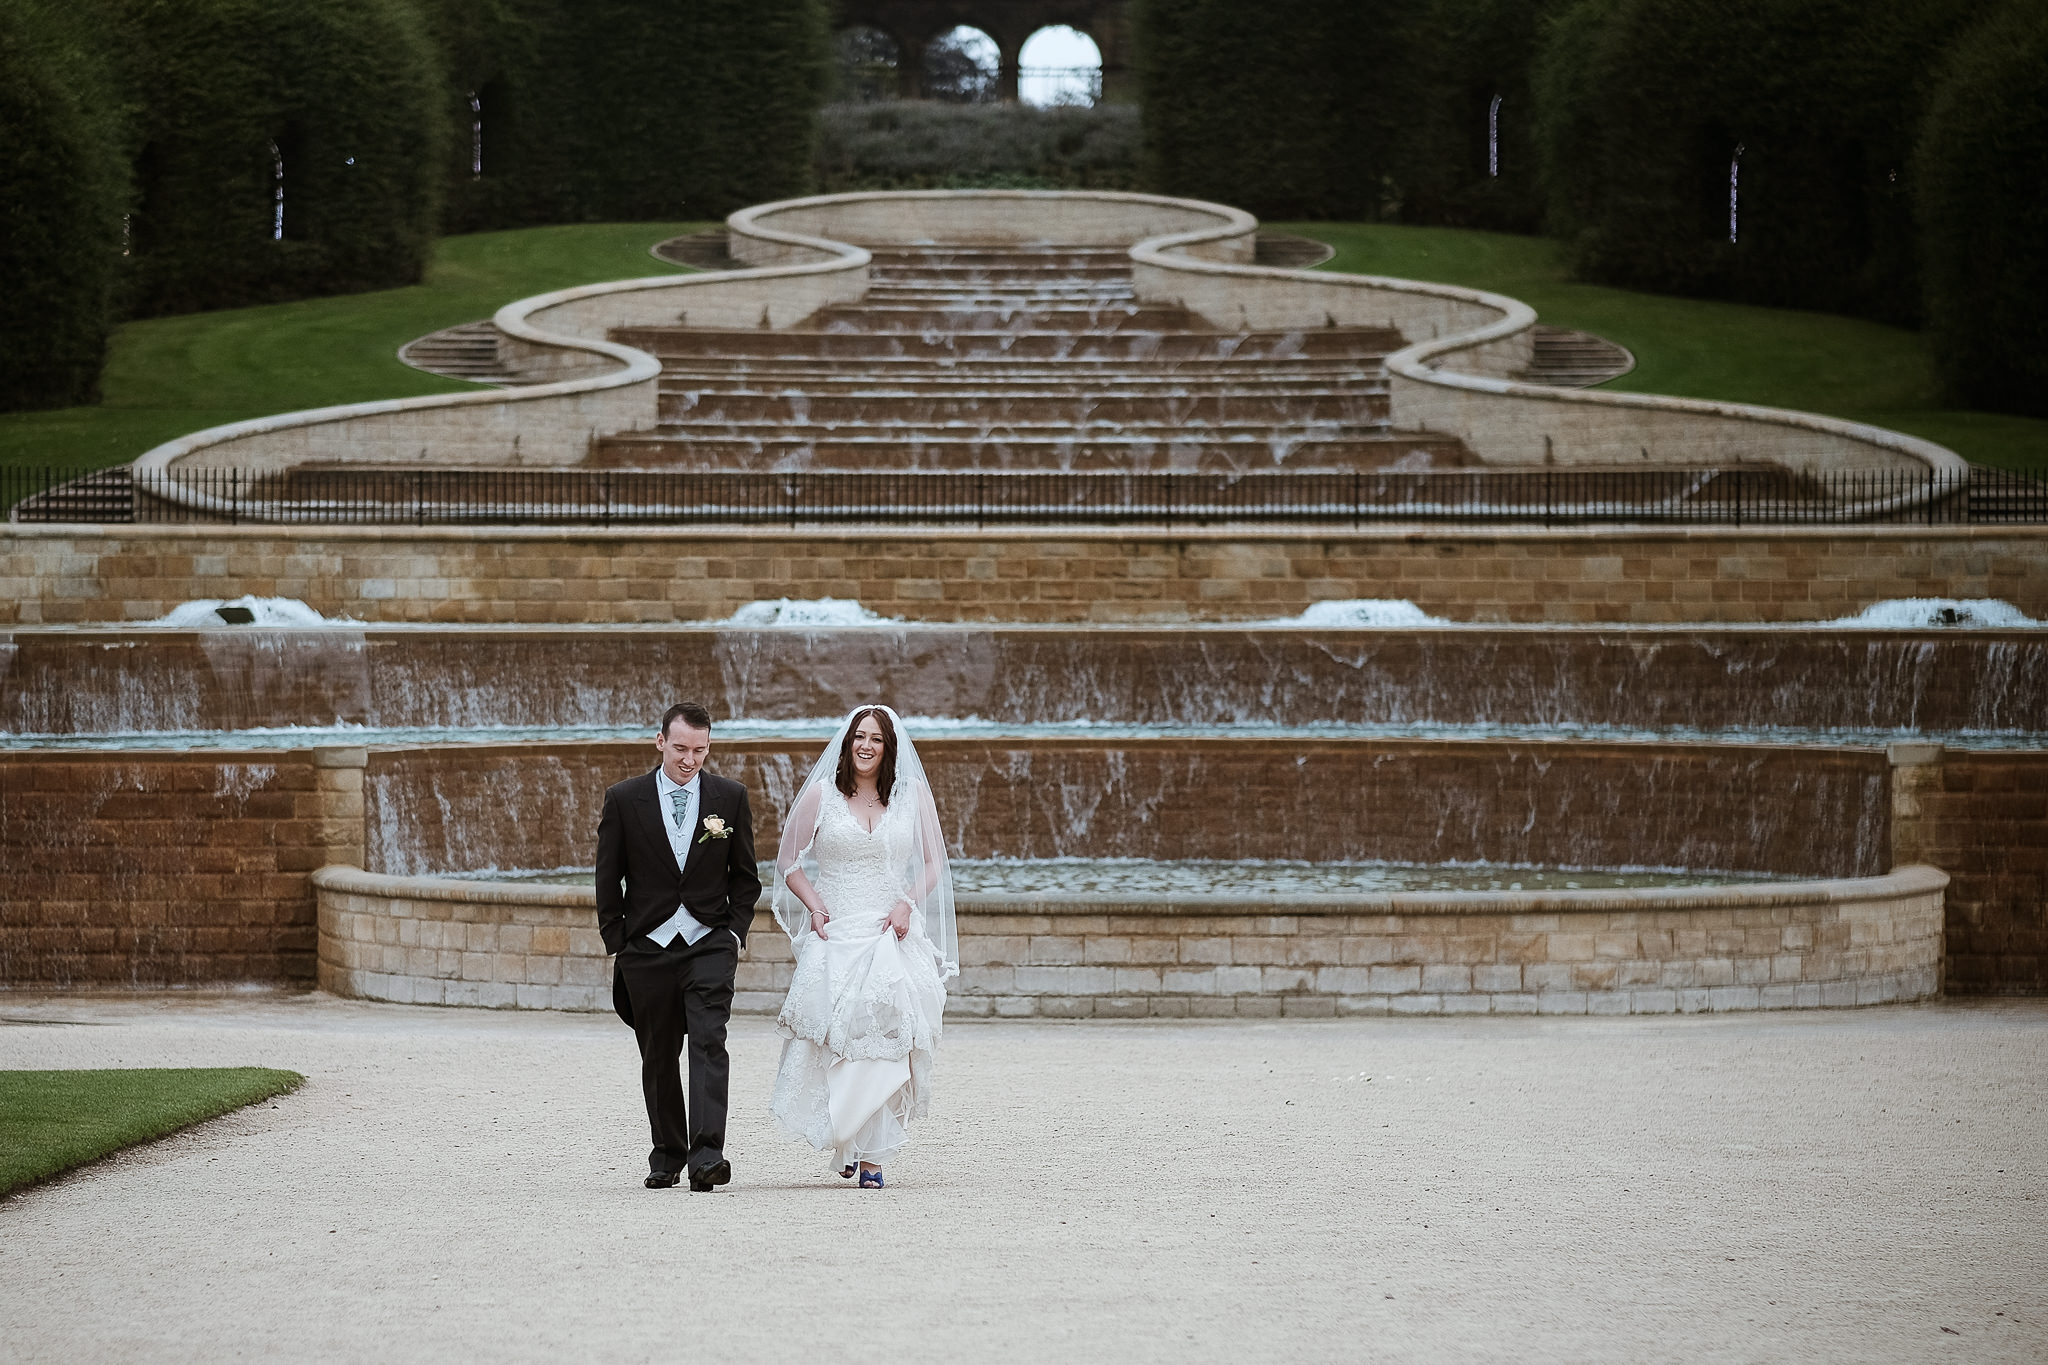 Bride and groom take a stroll in front of the fountains at Alnwick Garden